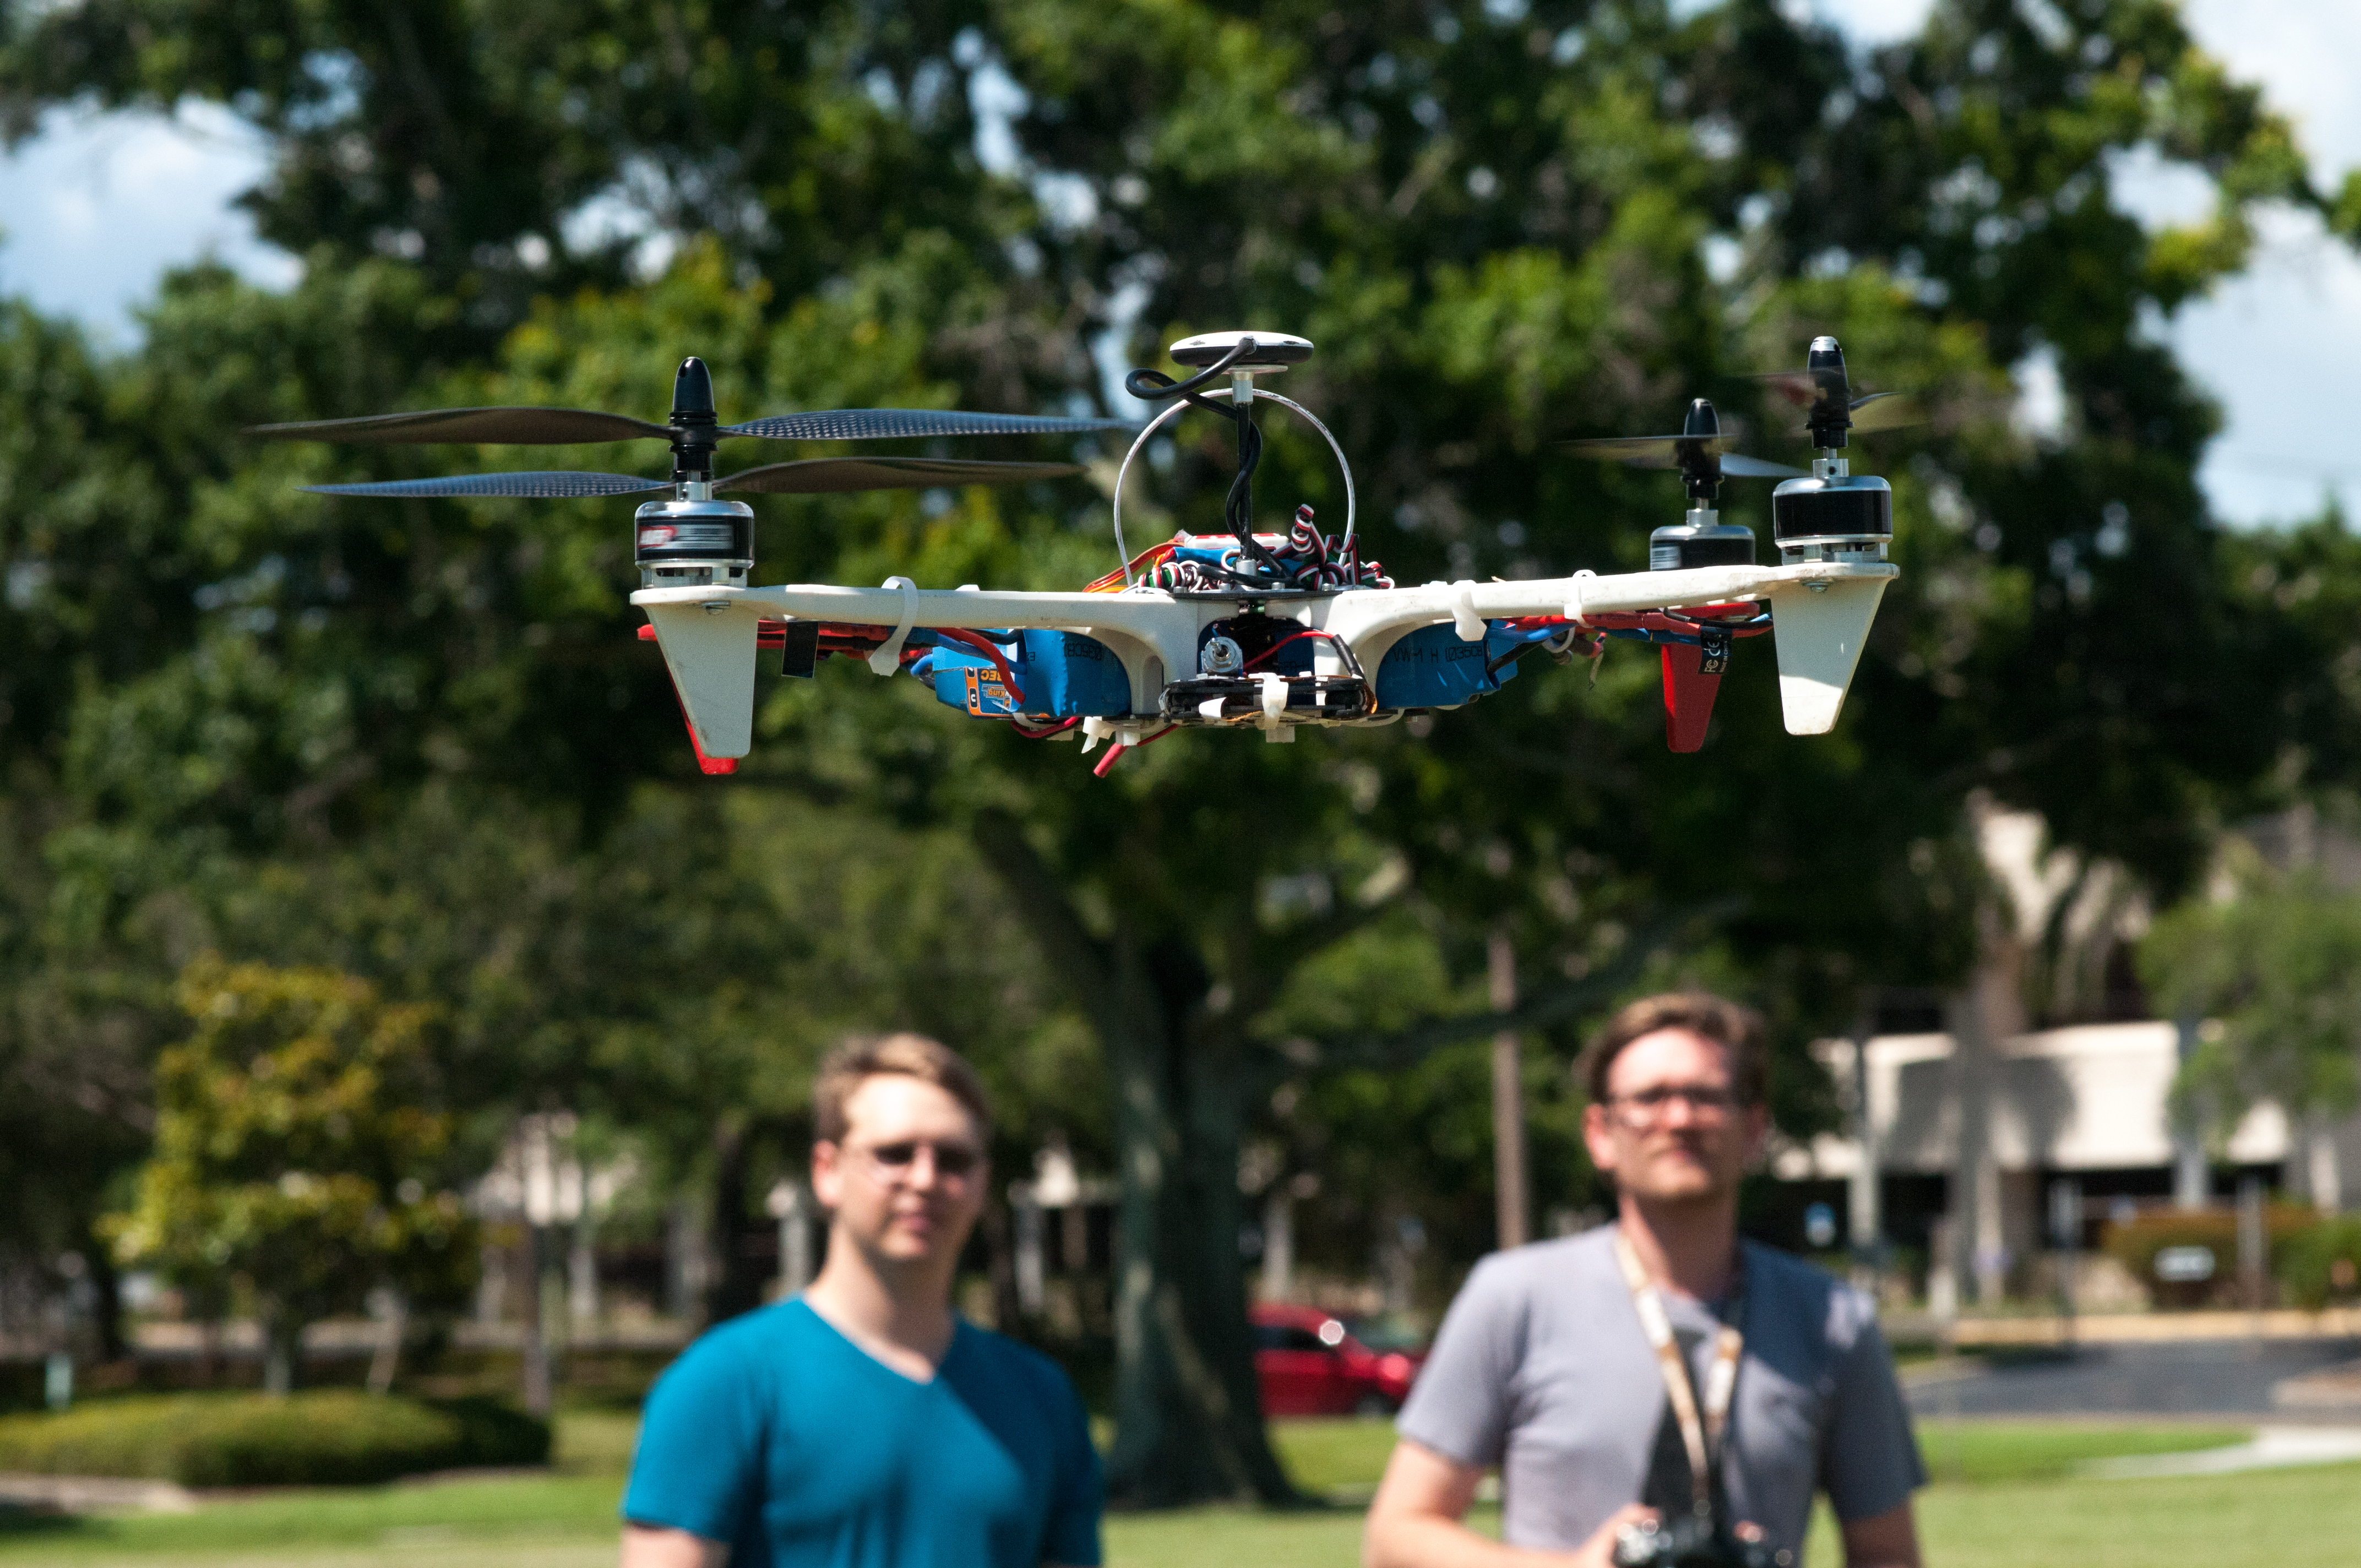 Greg LeCompte (left) and Kevin Lupex fly their drone in St. Petersburg, Fla.